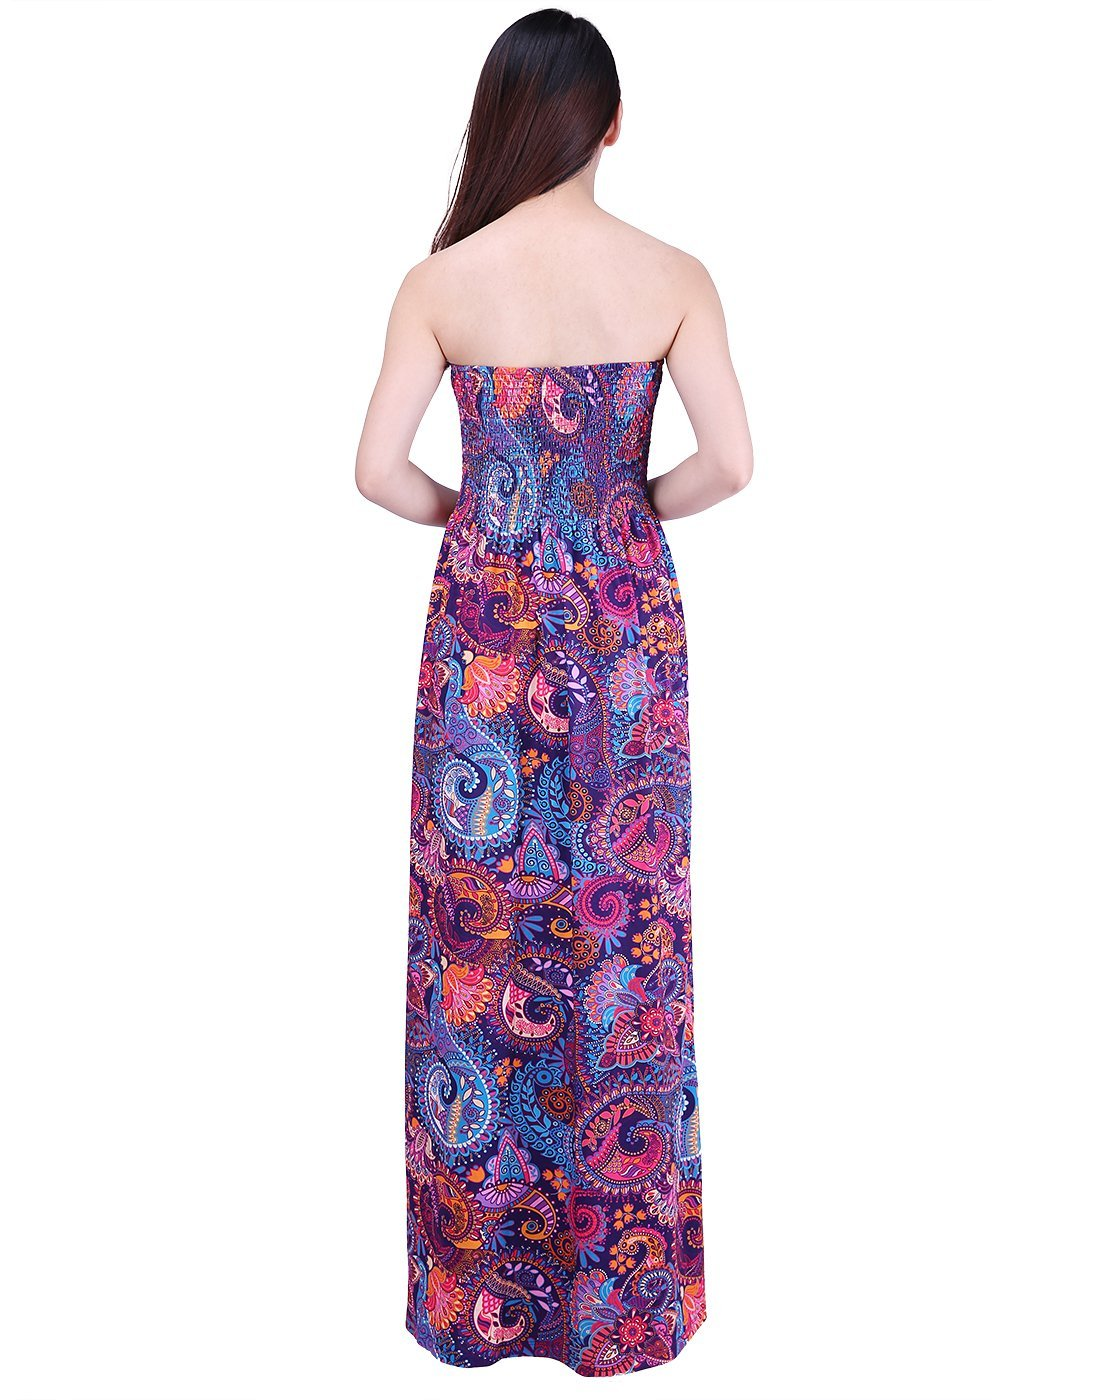 HDE Women's Strapless Maxi Dress Plus Size Tube Top Long Skirt Sundress Cover up (Purple Paisley, 2X) by HDE (Image #4)